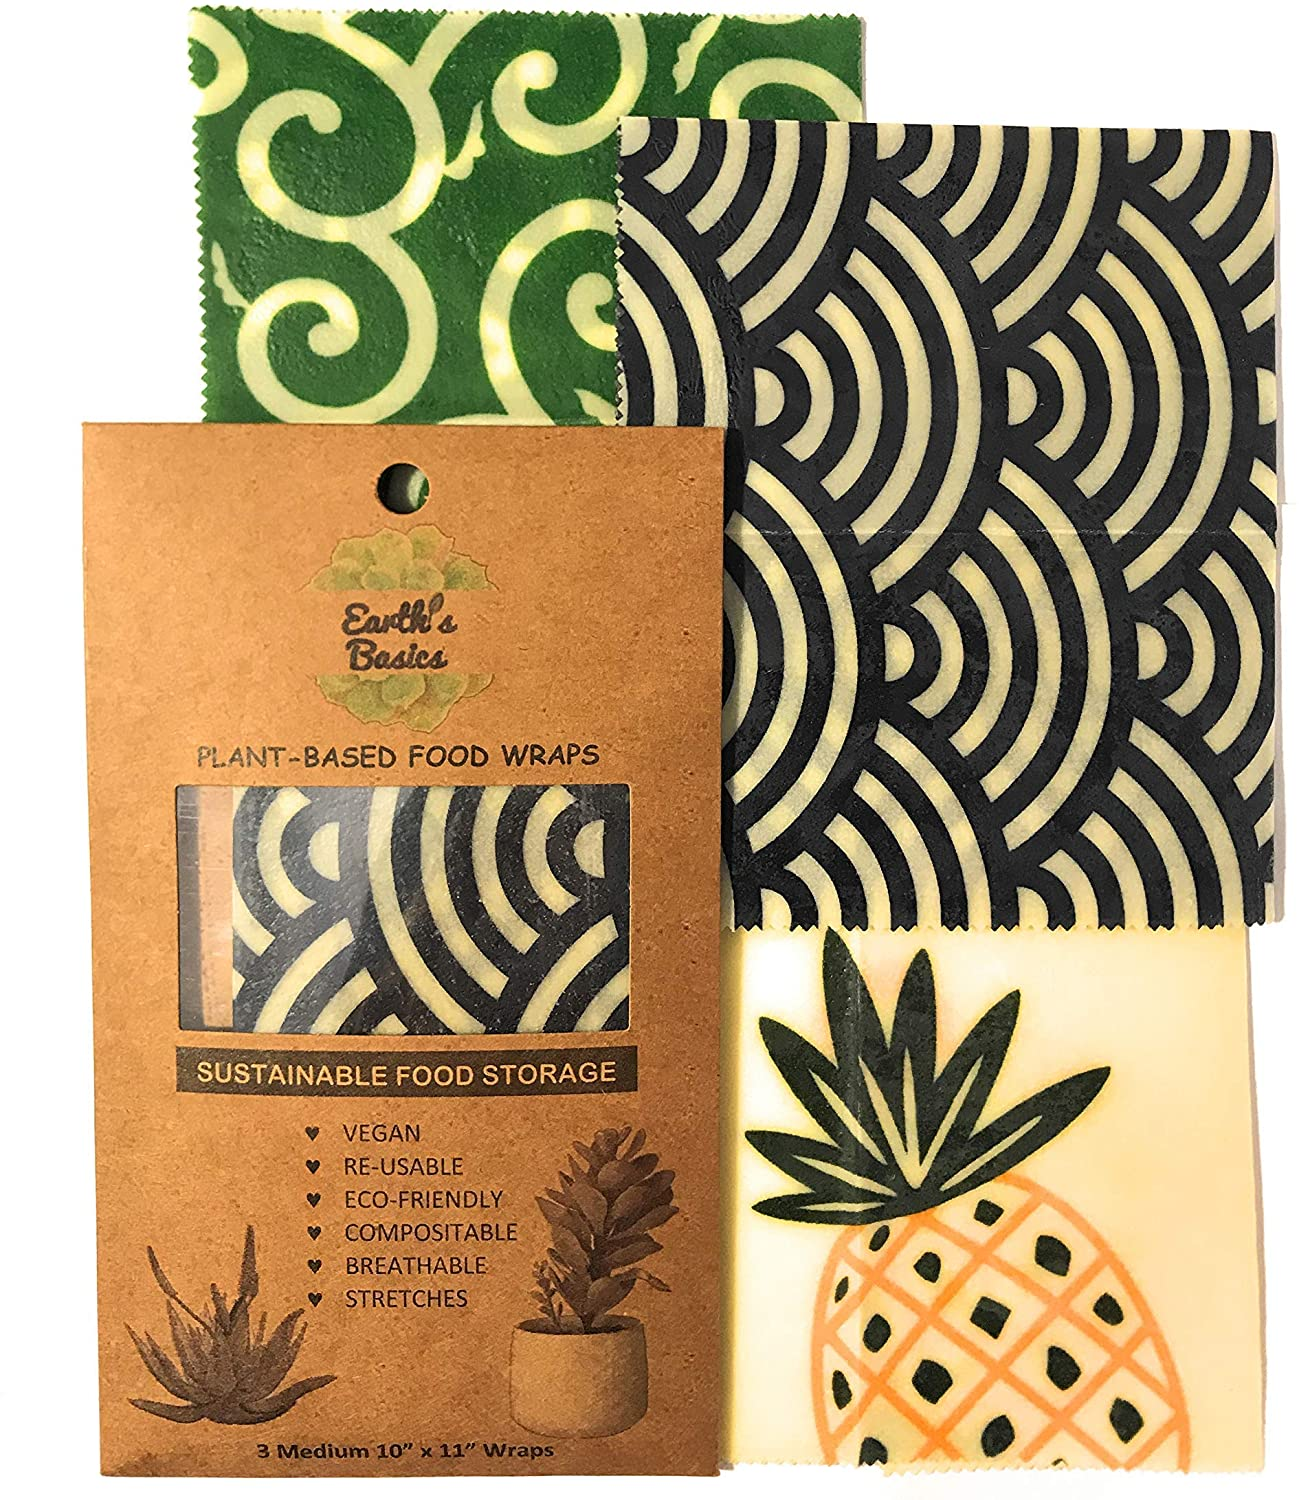 Reusable Vegan Wraps For Food, Organic Assorted Design 3 Pack by Earth's Basics - Plant Based Food Wraps, Non-Toxic, Biodegradable, Eco friendly - 3 Medium Wraps